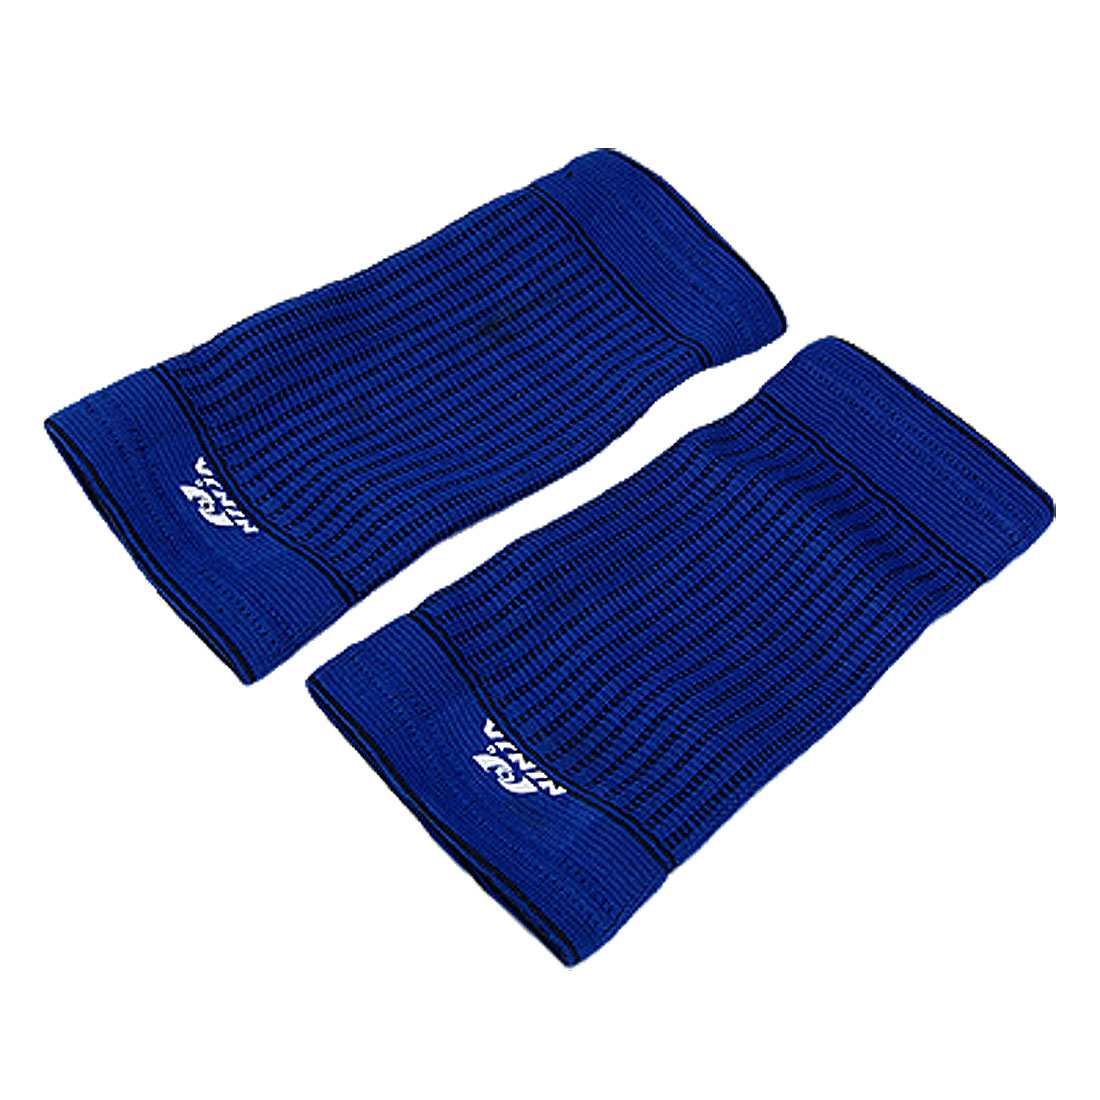 Sports Support Protector 2PCS Elastic Crus Brace Zxifr